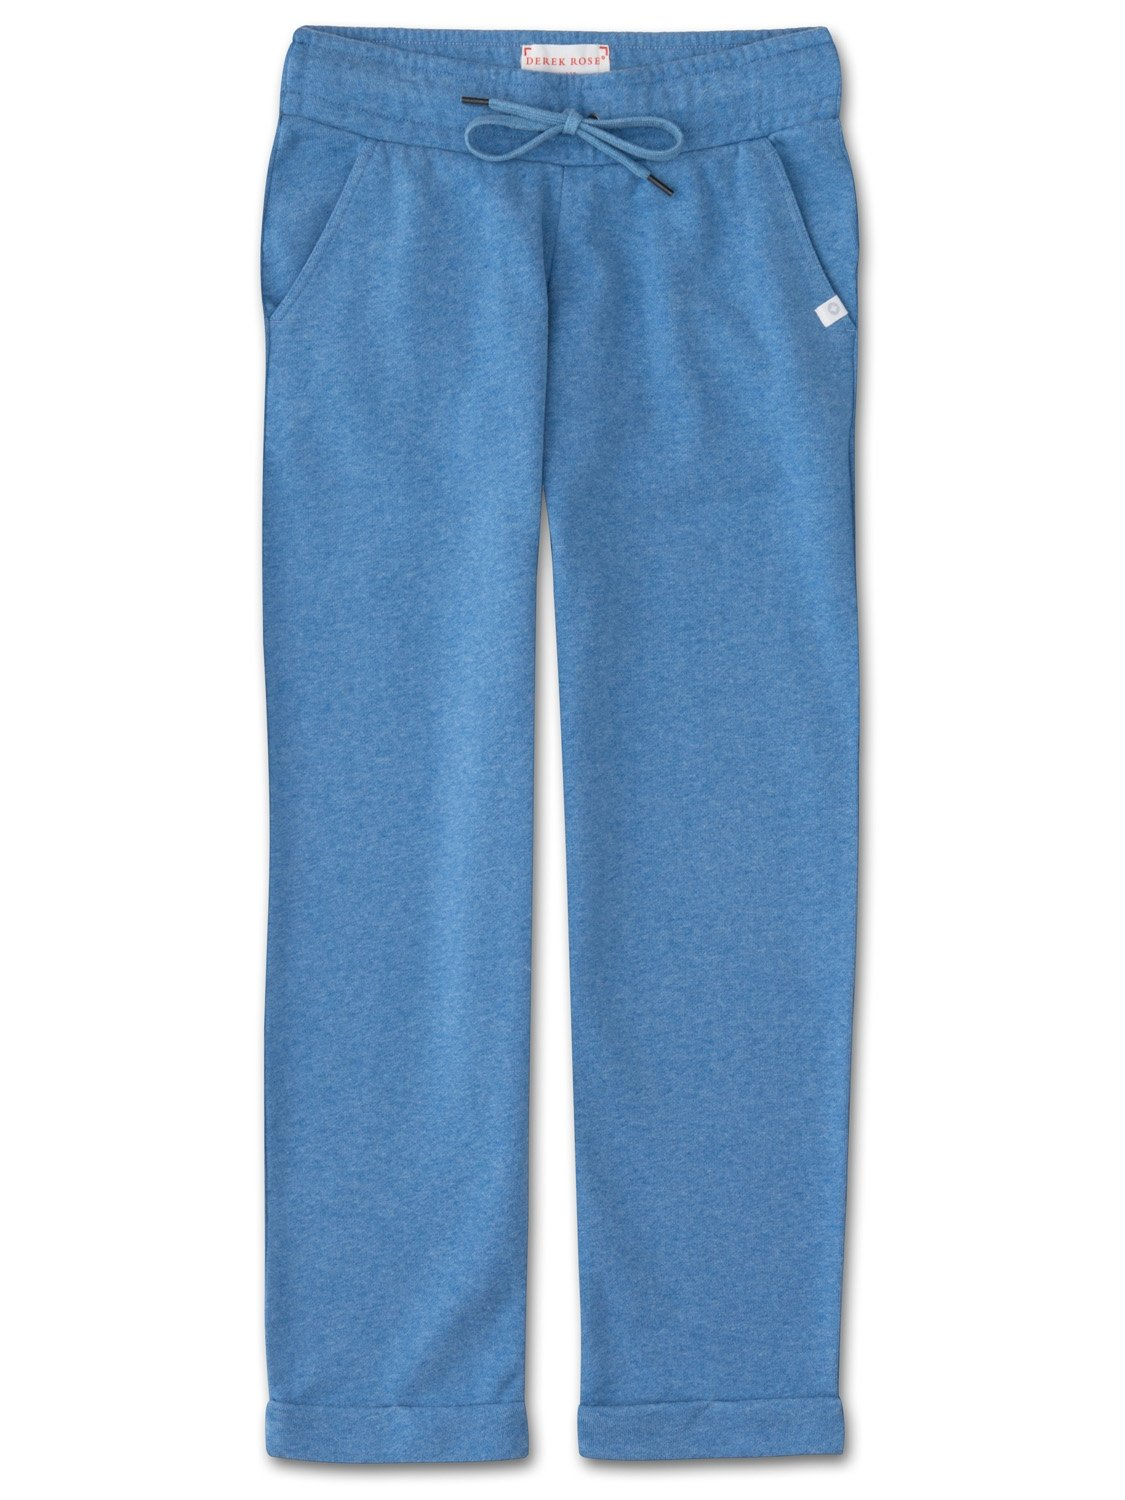 Women's Cropped Leisure Pant Devon 2 Loopback Cotton Blue